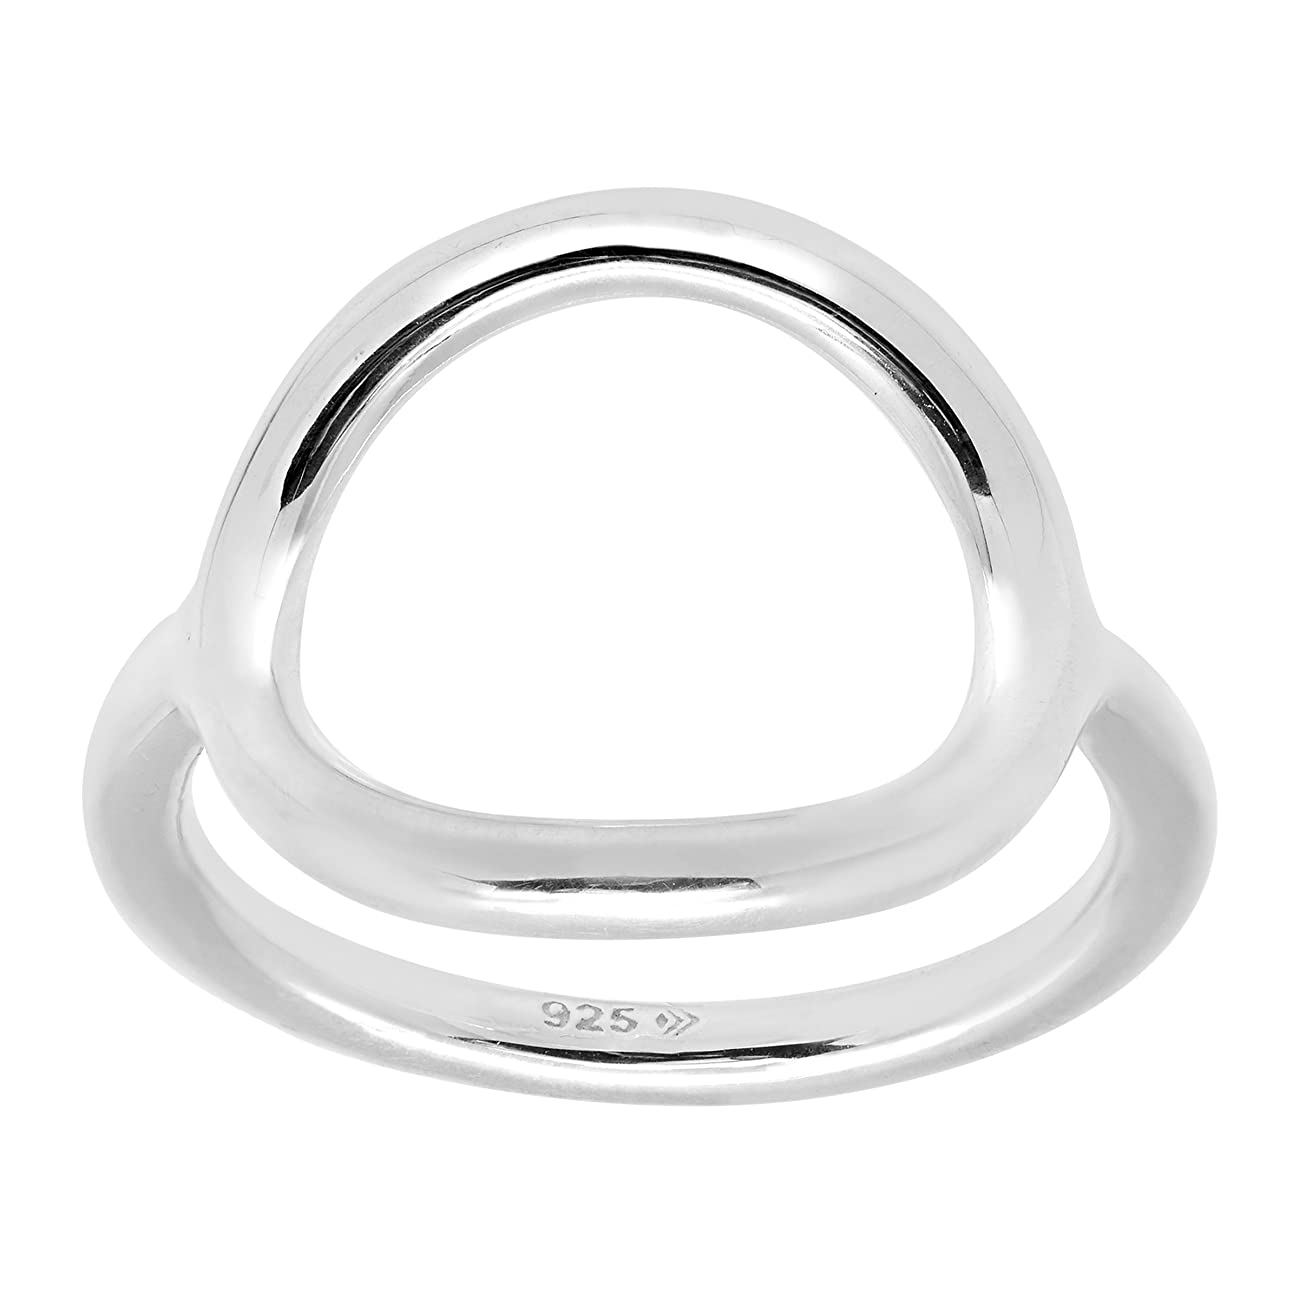 Silpada 'Karma' Open Circle Ring in Sterling Silver